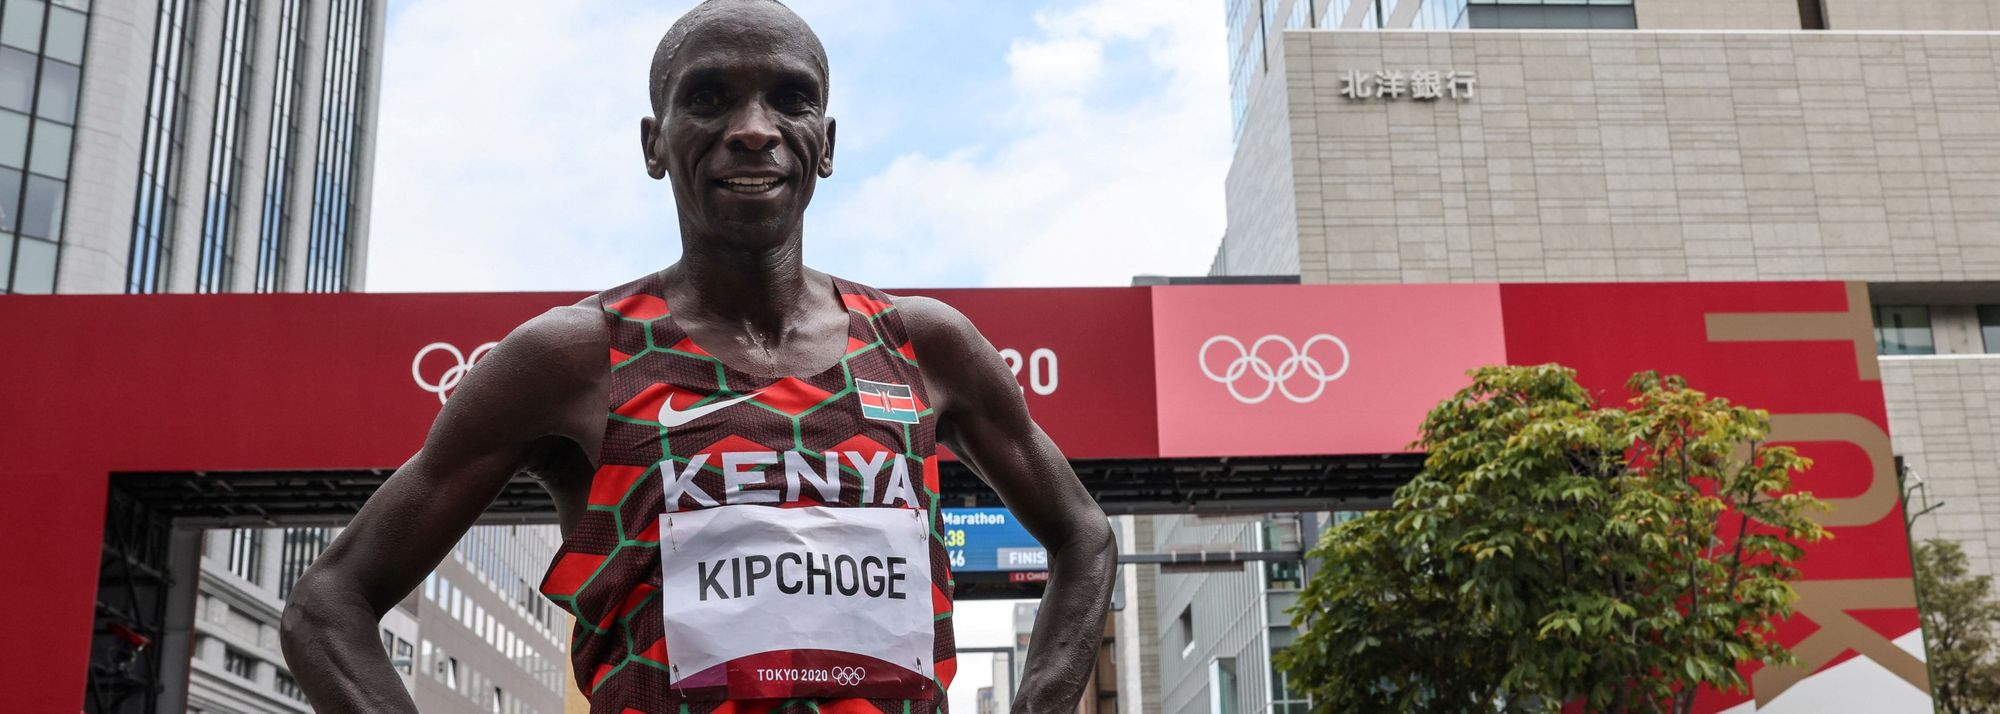 Eliud Kipchoge is to take on Paris 2024 mass race hopefuls later this month in a running challenge being held to mark 1000 days until the Olympics.